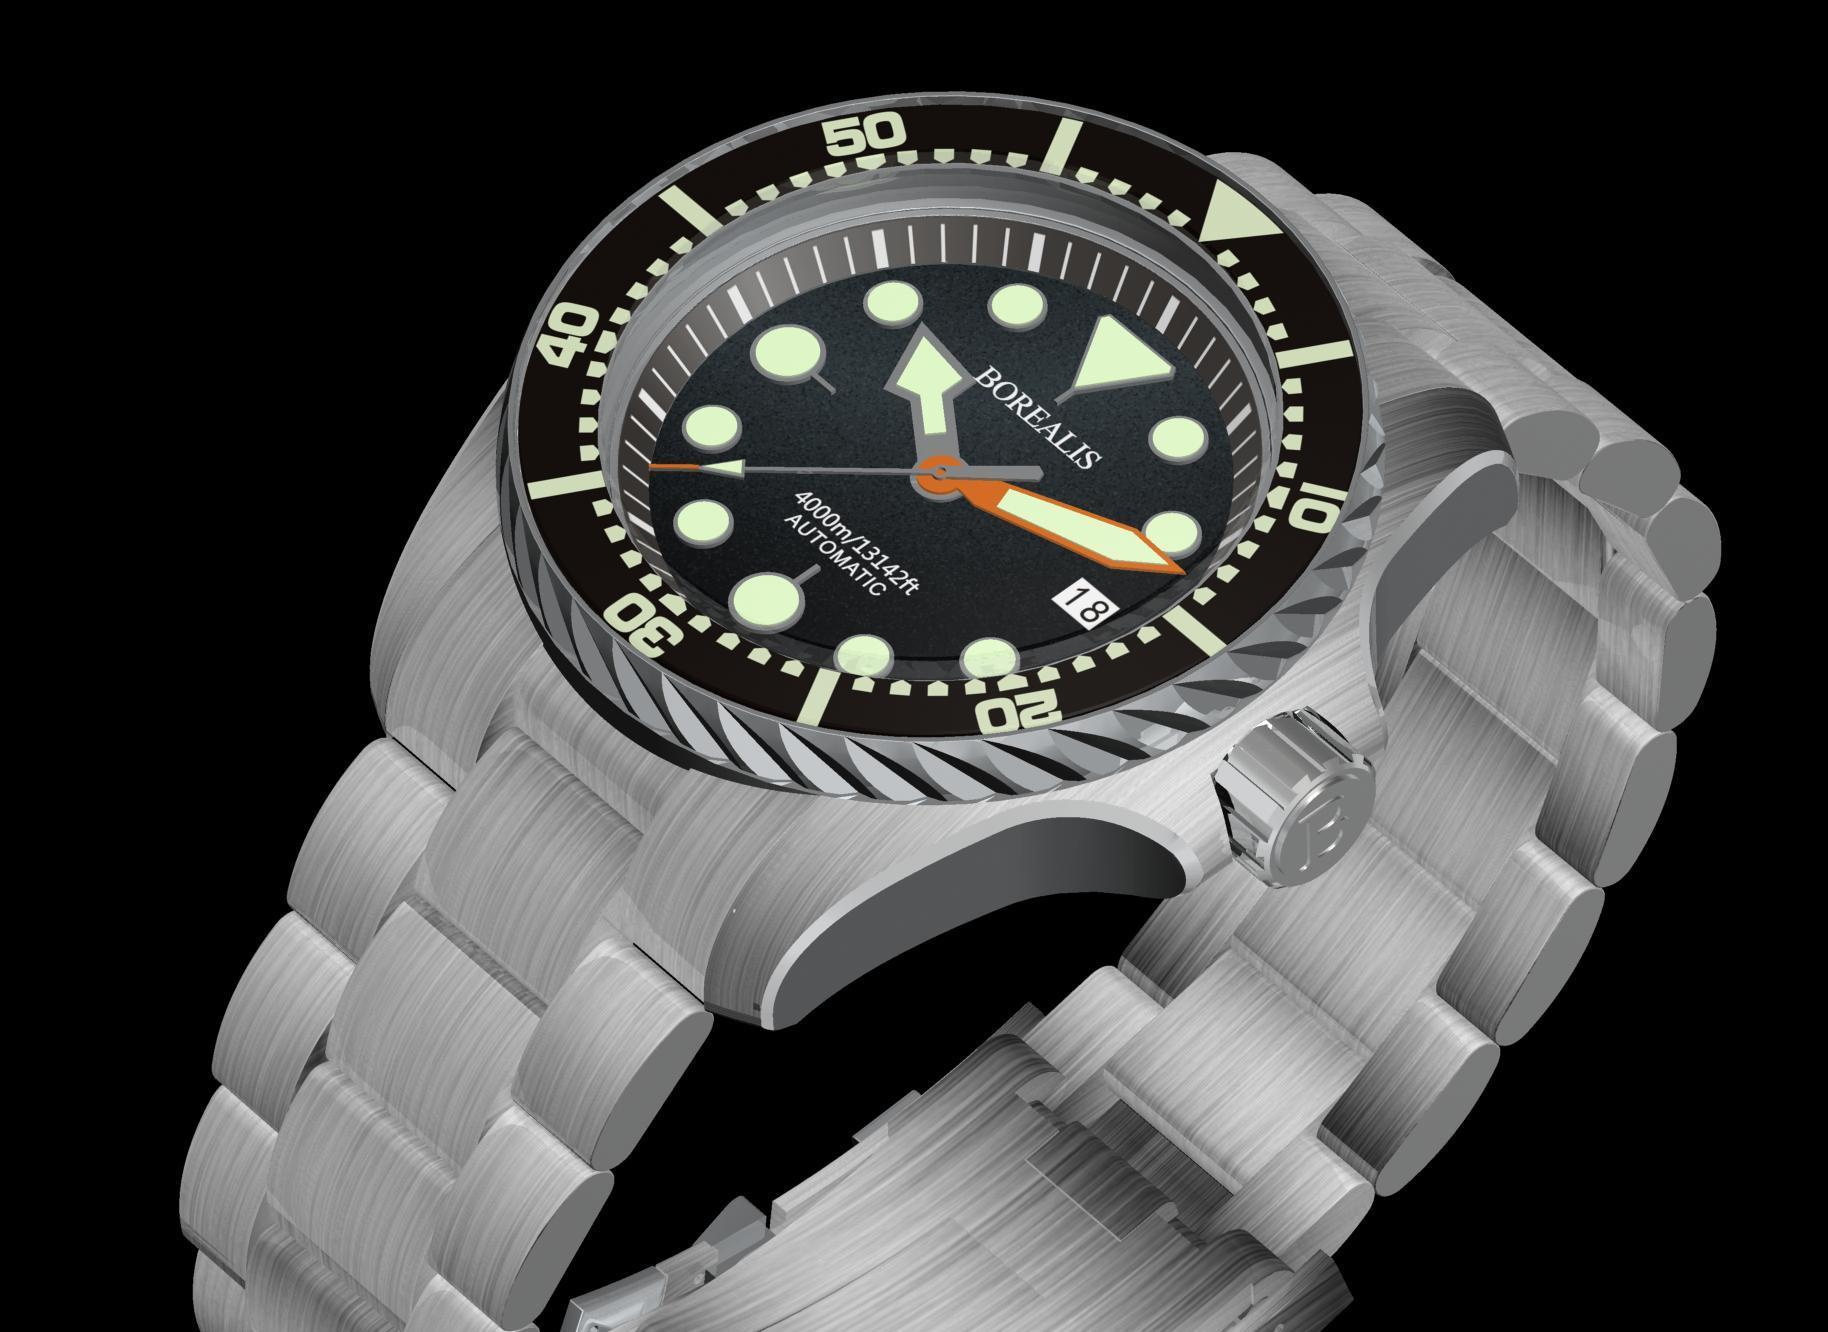 Borealis Seafarer II Stainless Steel Black C3 Sapphire Turbine Style Grip Bezel 4000m Miyota 9015 Automatic Diver Watch